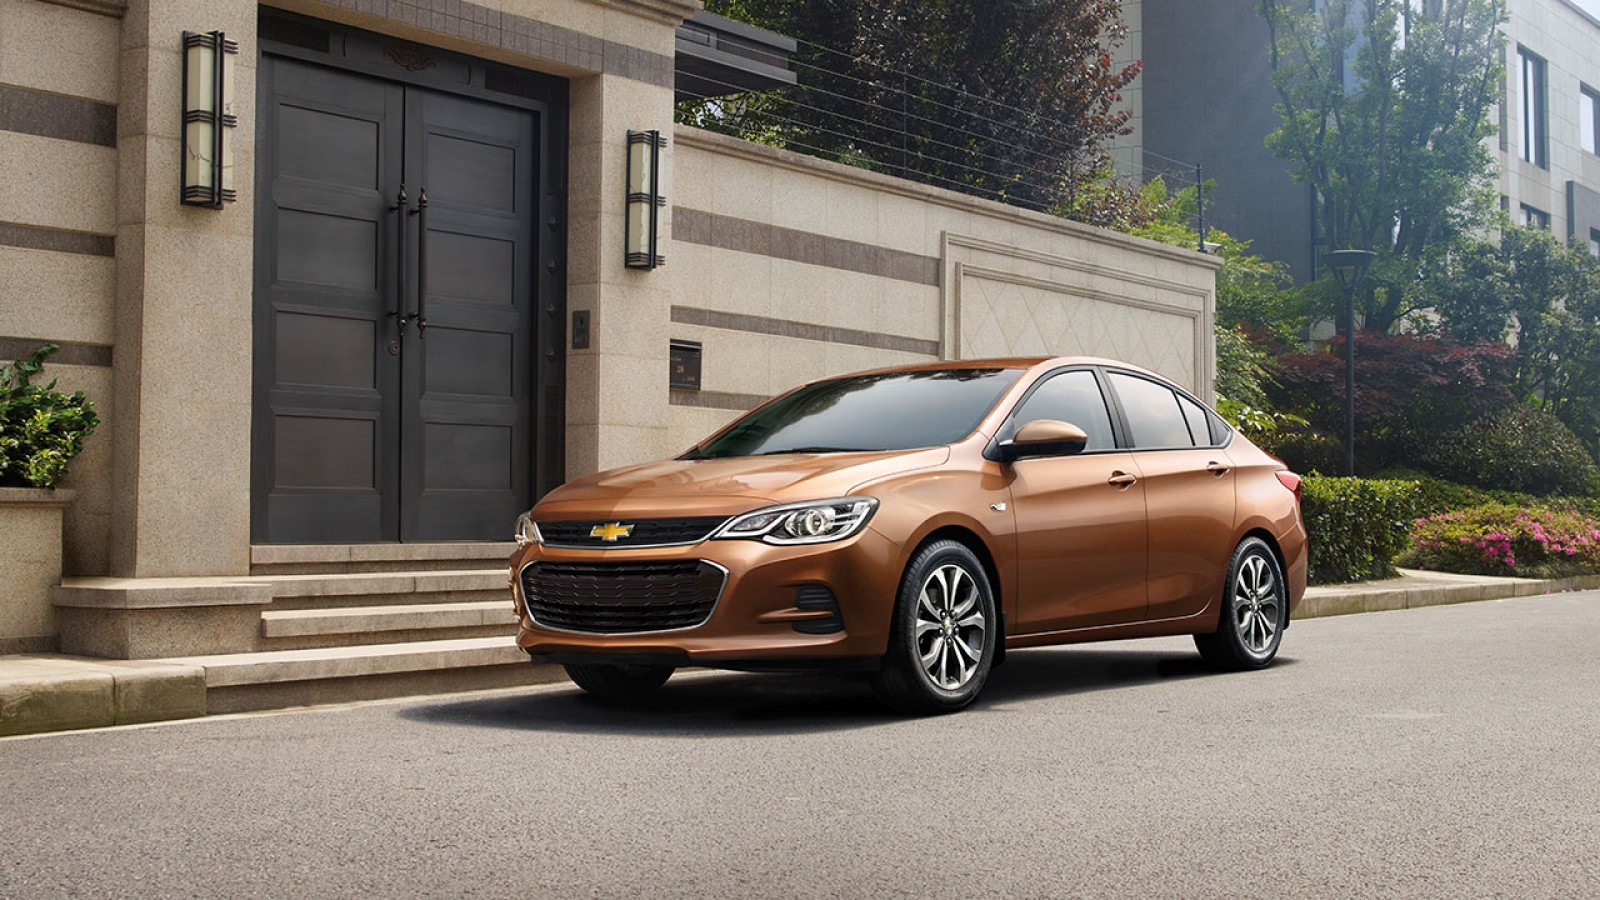 Chevrolet Cavalier 2018 perfil frontal